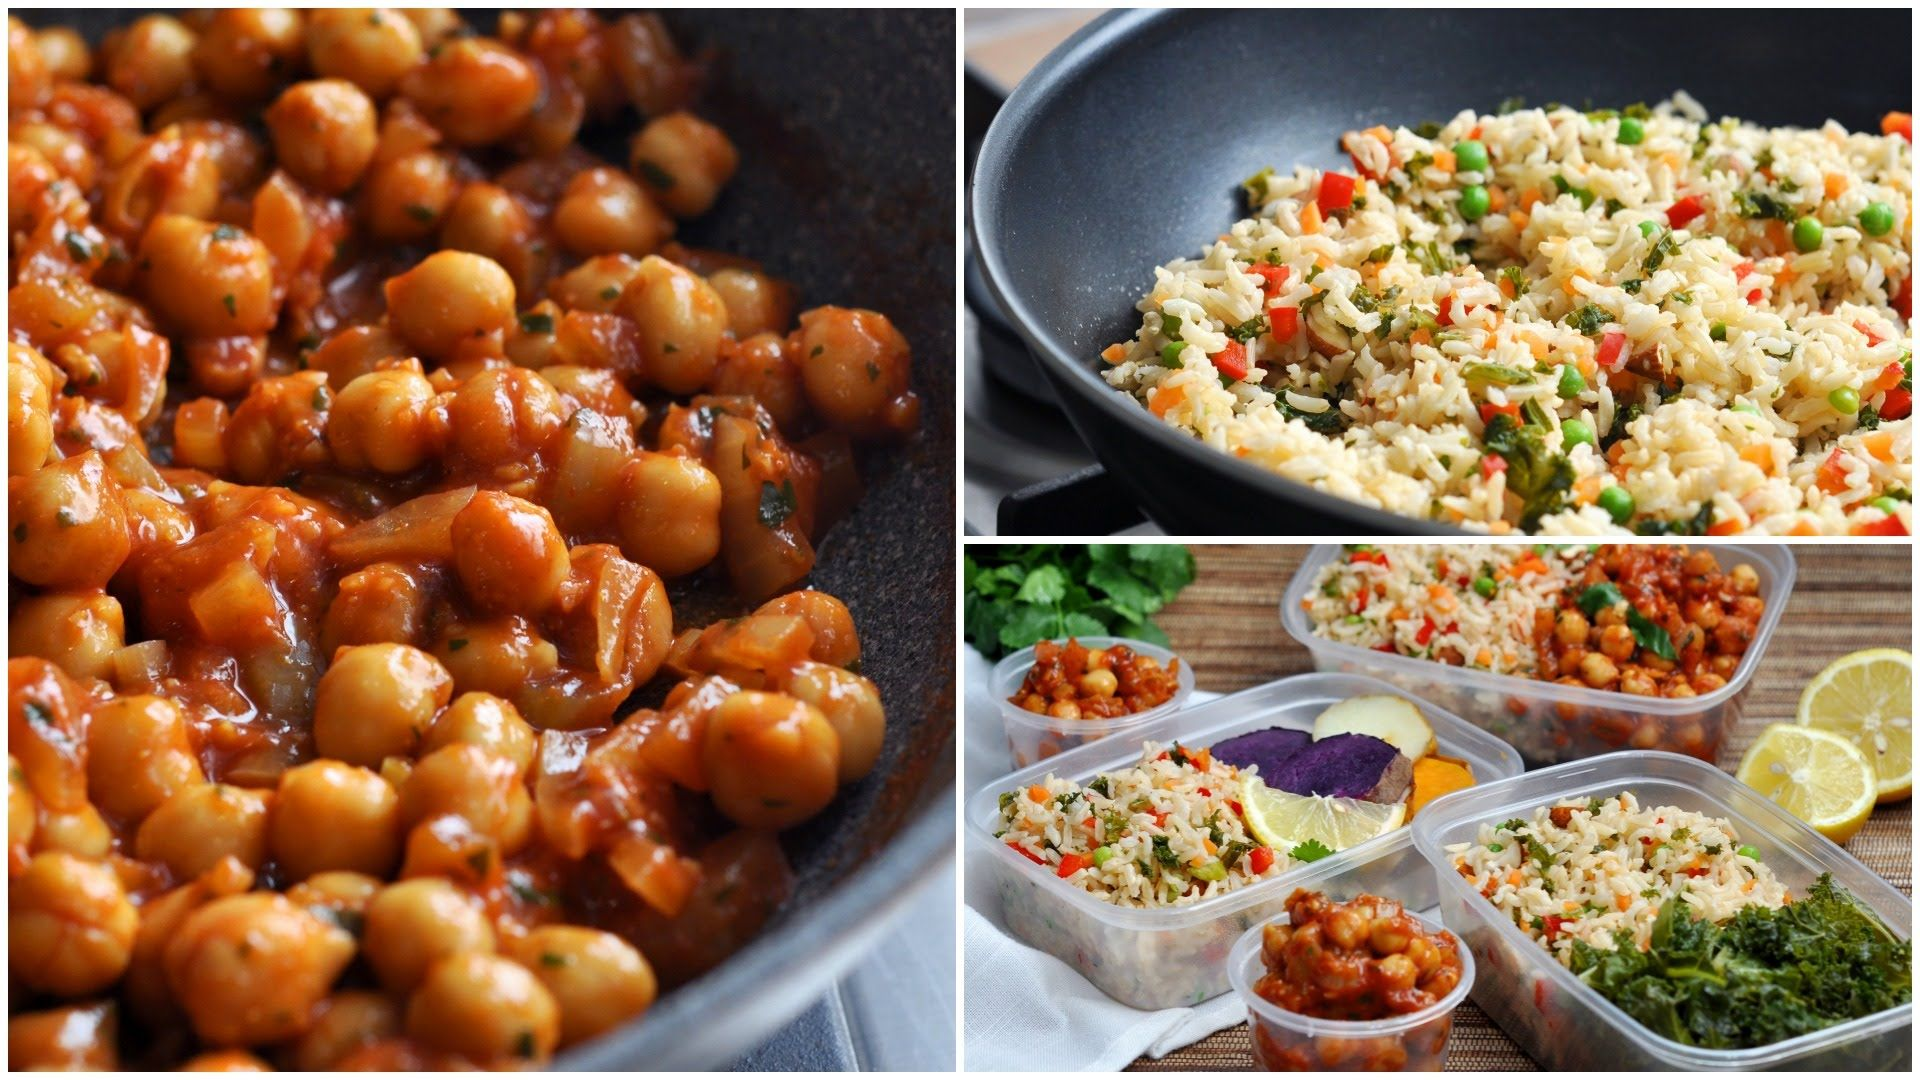 High-carb low-fat food preparation on a budget  Simple